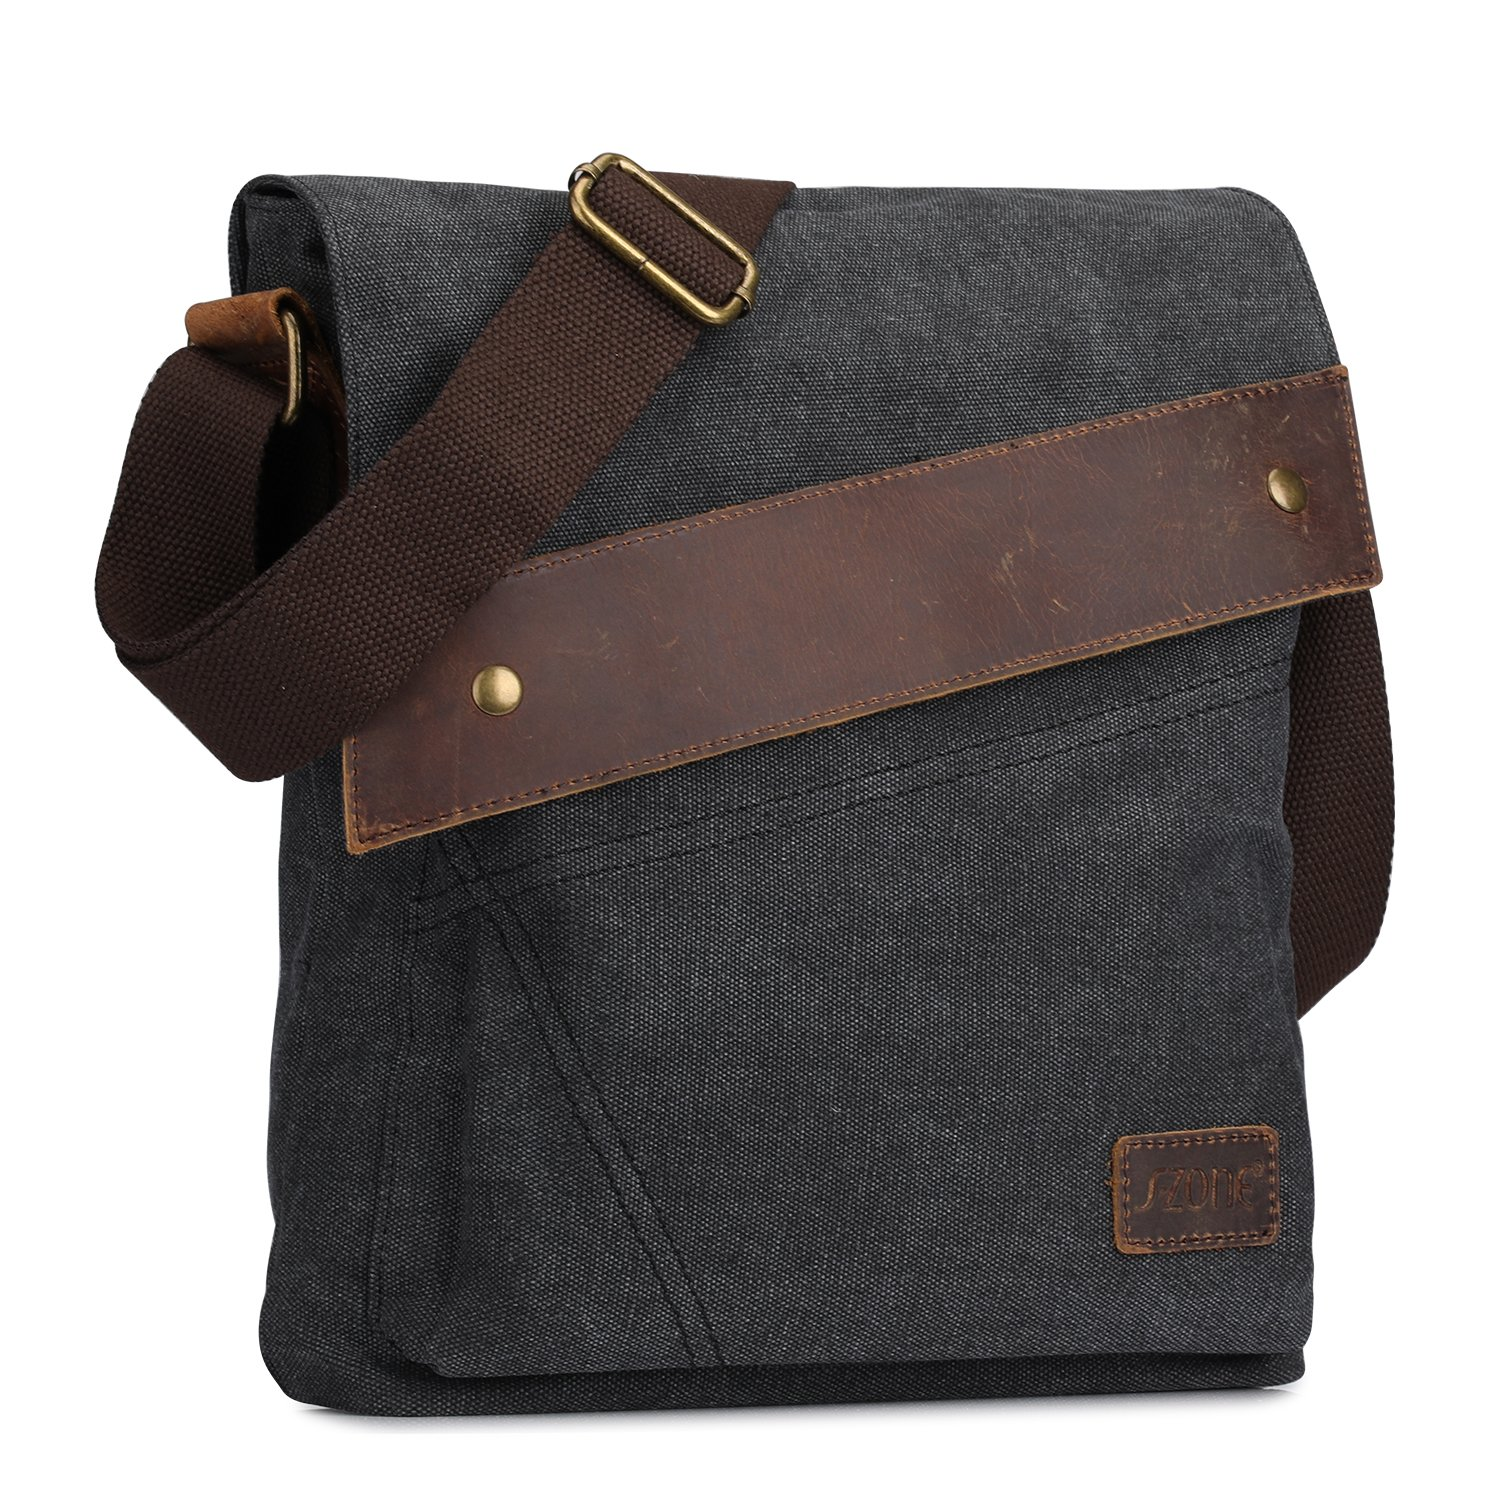 S-ZONE Vintage Lightweight Small Canvas Messenger Bag Travel Shoulder Crossbody Purse Dark (Gray) by S-ZONE (Image #3)